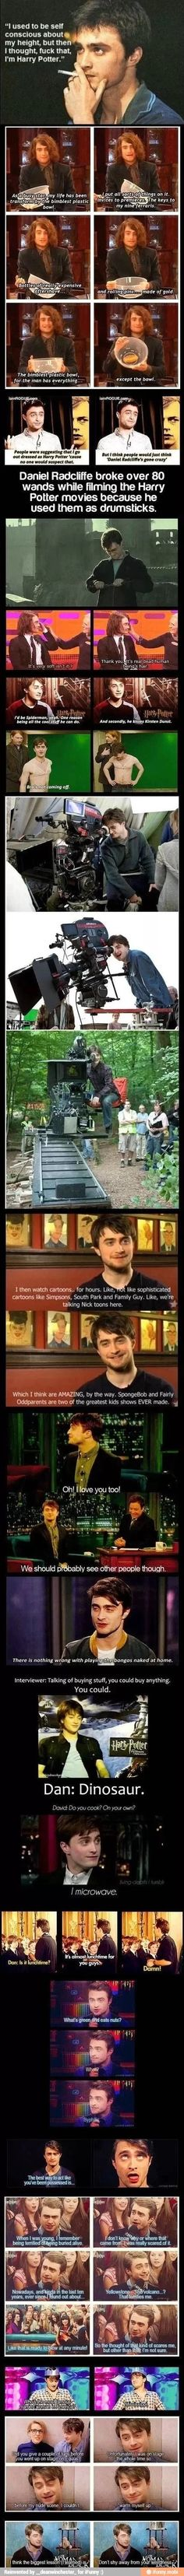 God bless Daniel Radcliffe.